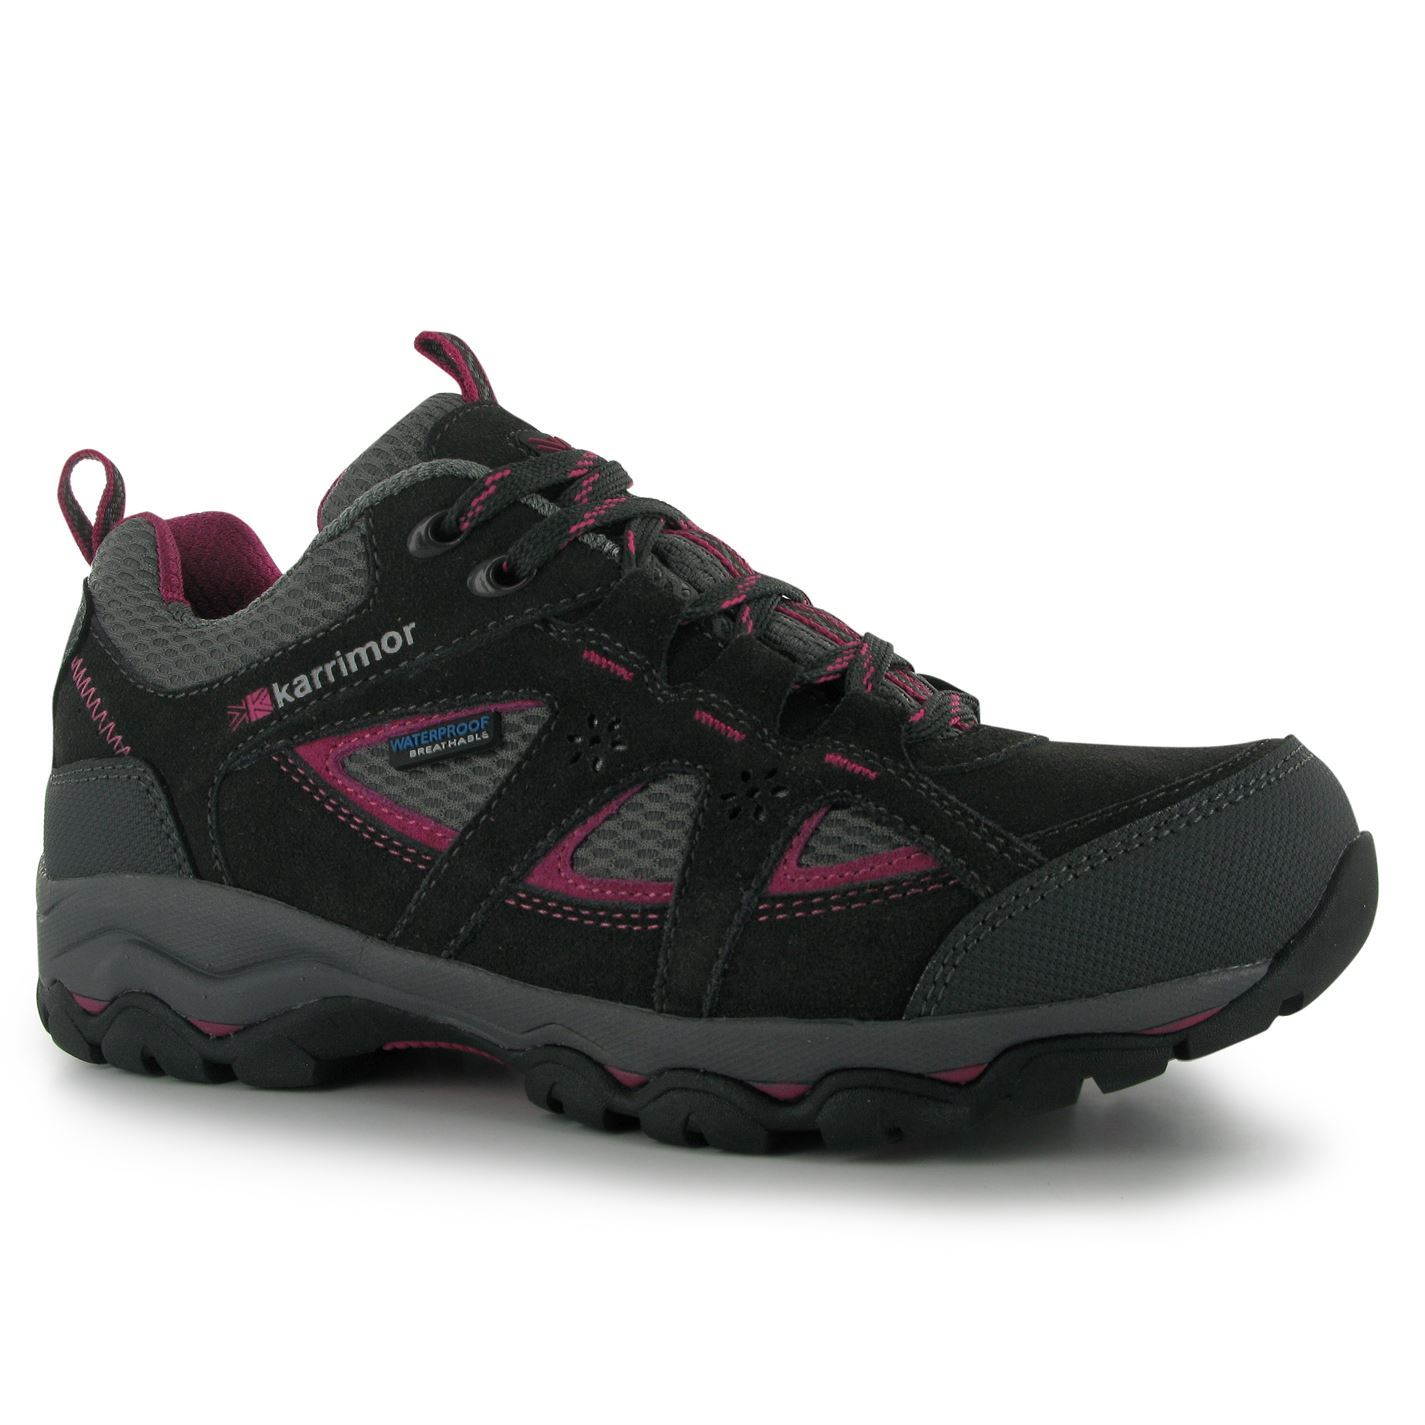 Karrimor Ladies Waterproof Walking Shoes